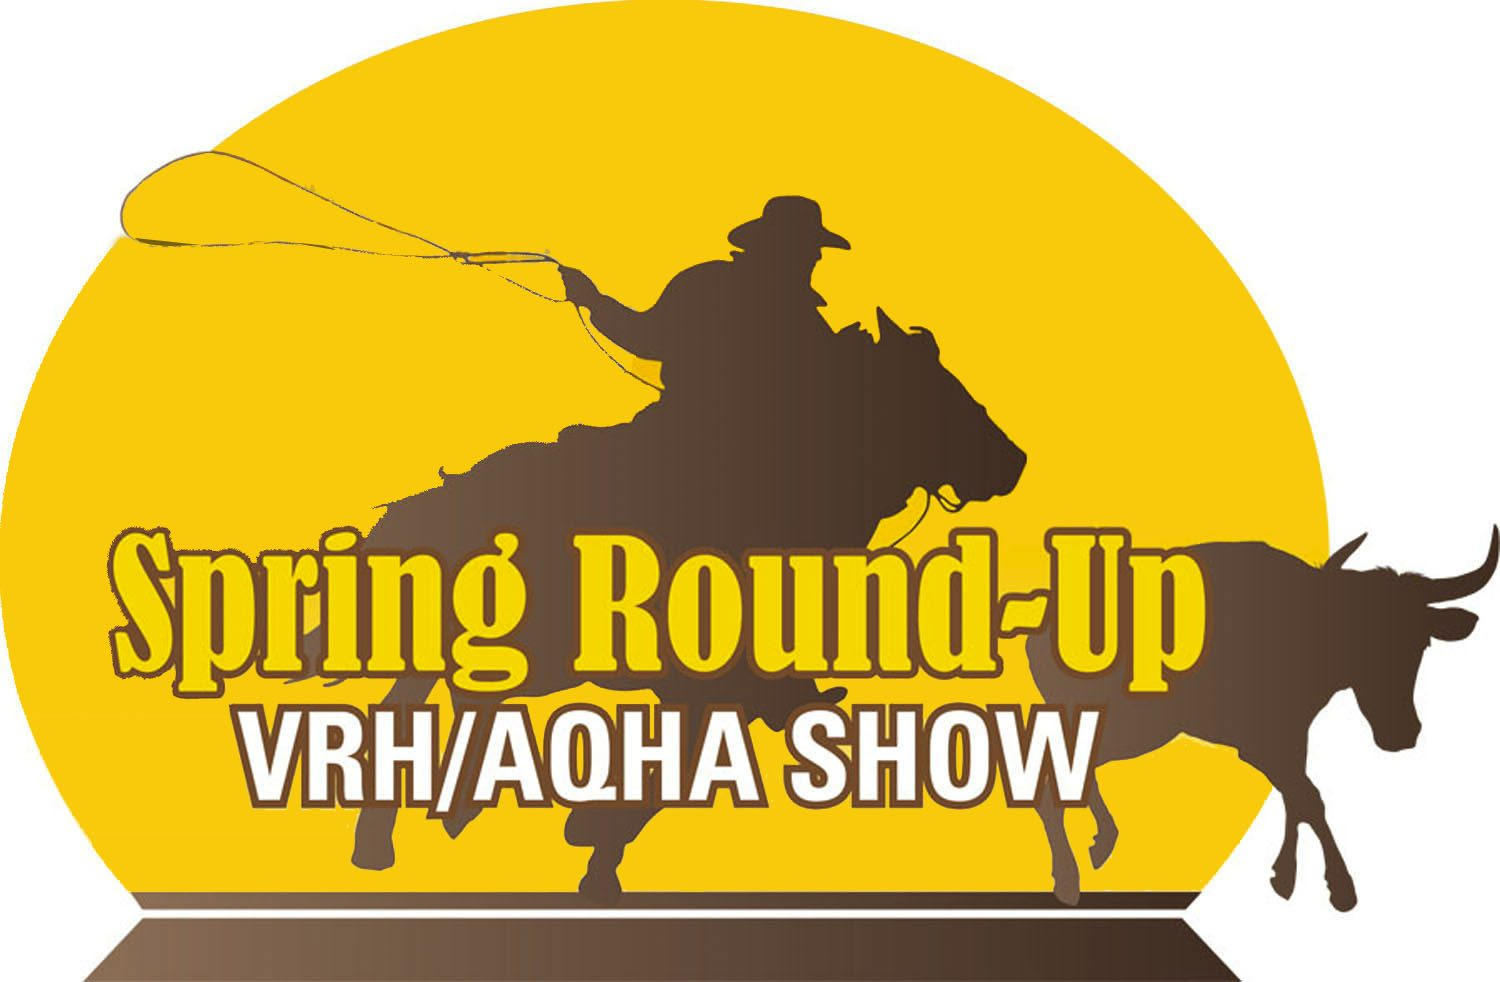 2nd Spring Round-Up VRH/AQHA Show